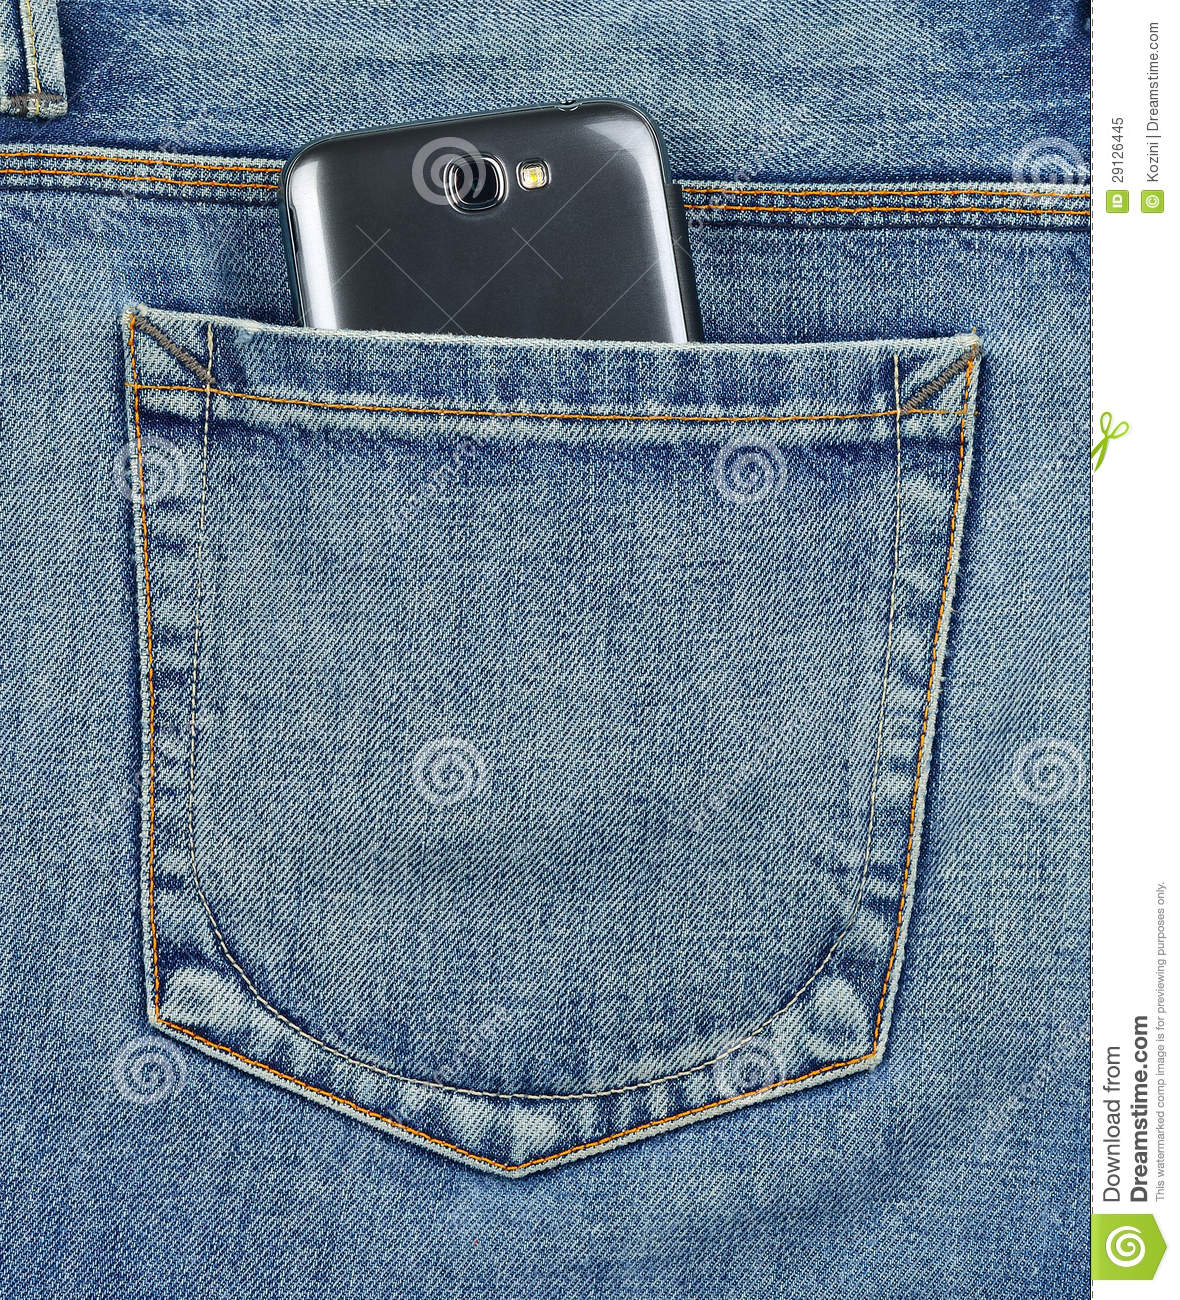 Back Pocket Of Jeans Mobile Phone Royalty Free Stock Photo - Image 29126445